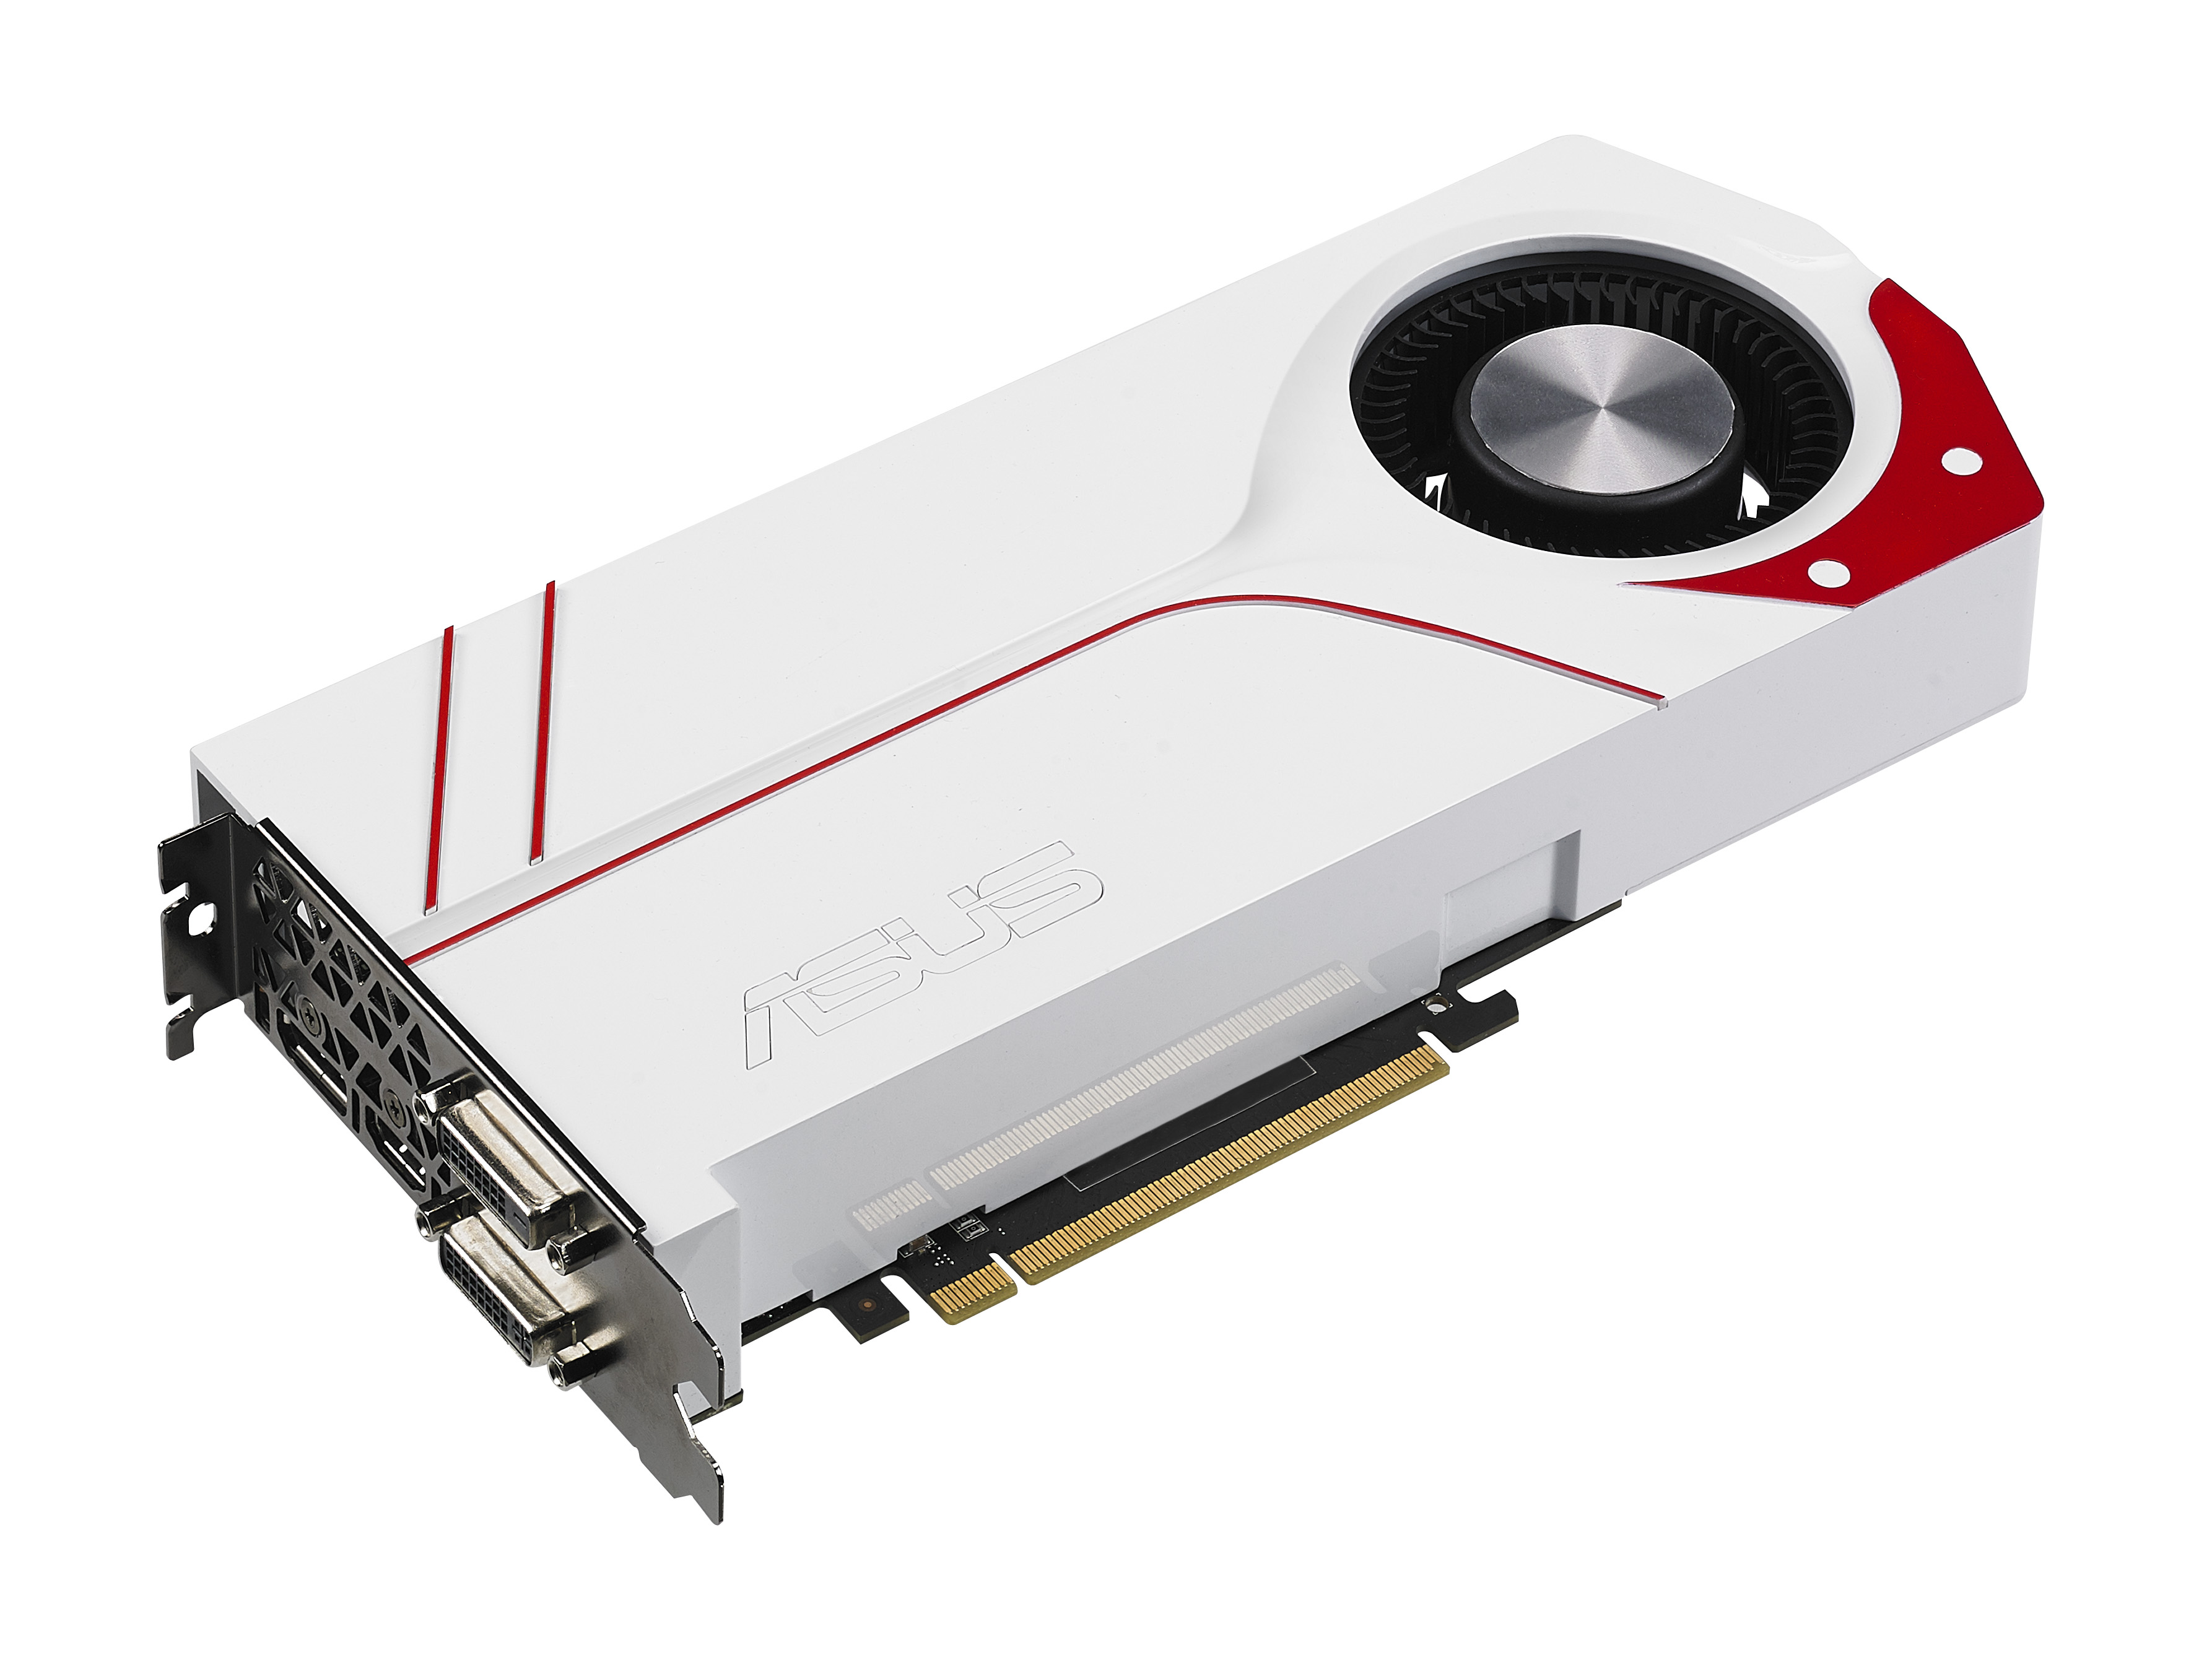 asus announces white colored geforce gtx 970 turbo features 1228